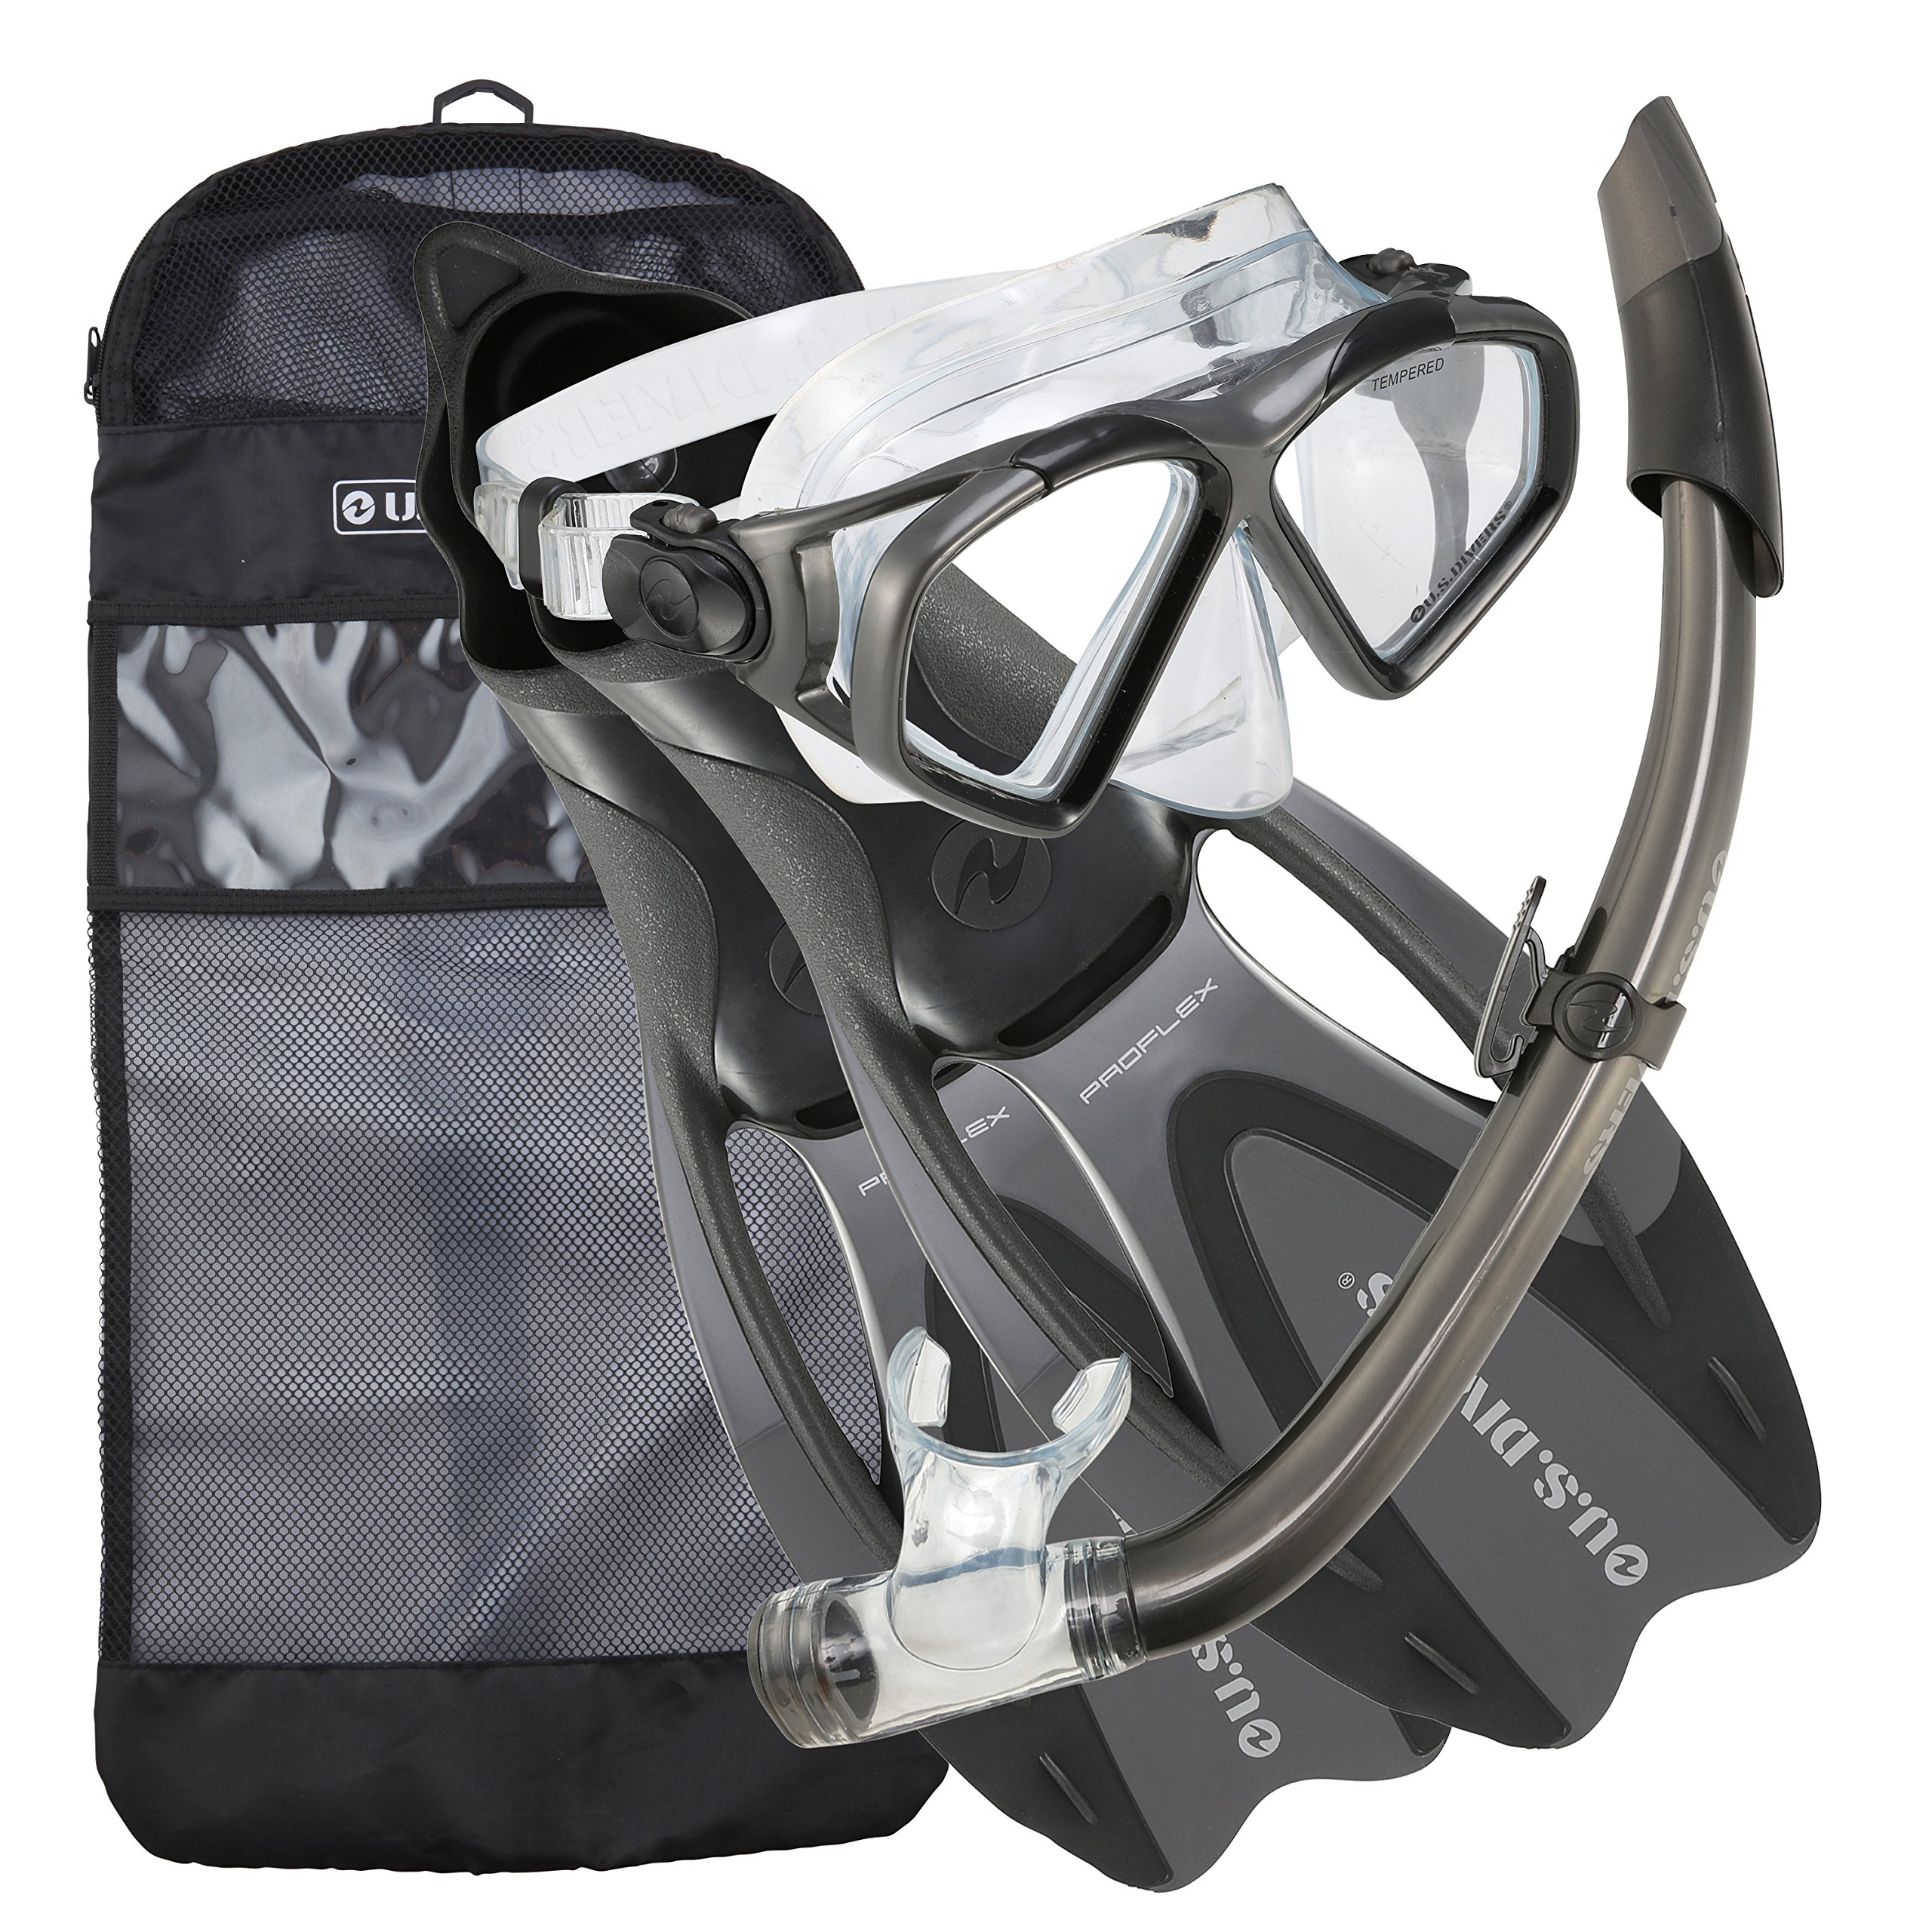 U.S. Divers Cozumel Snorkeling Set - Adult Mask, Proflex Fins, Splash Guard Snorkel + Gear Bag by U.S. Divers